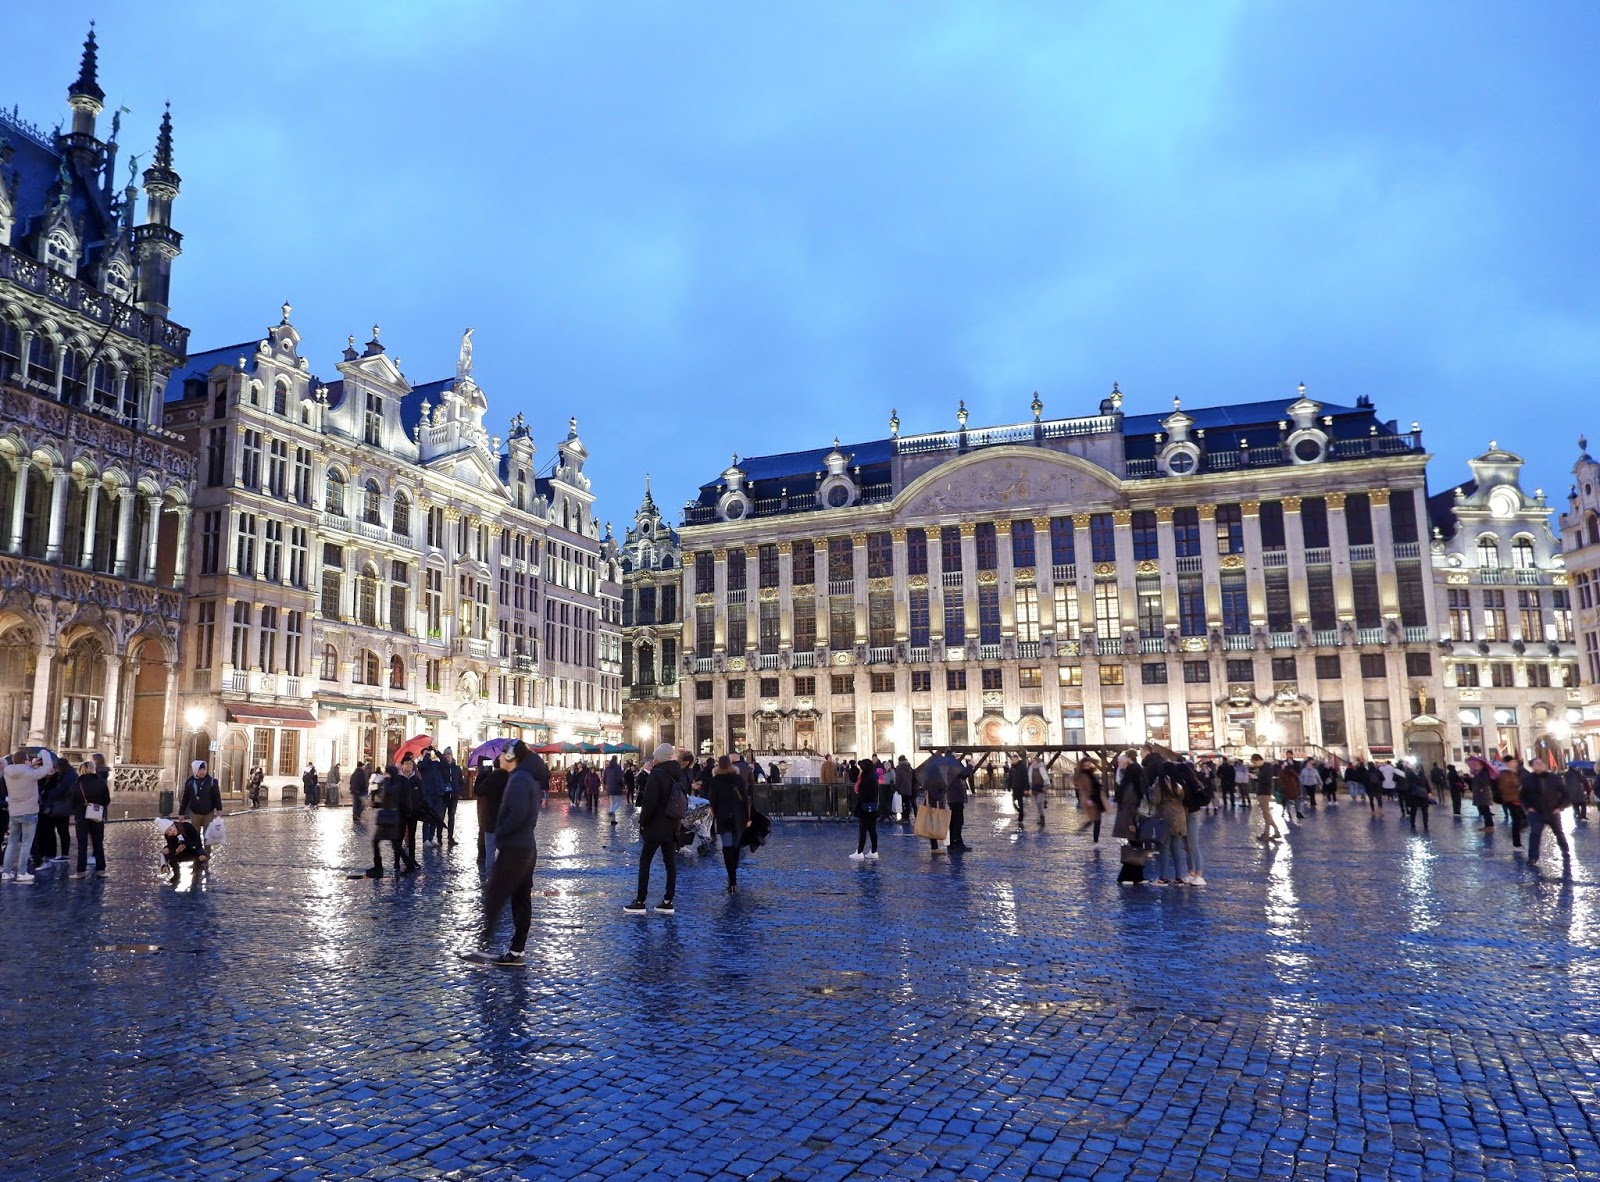 Brussels Grand Place in the rain